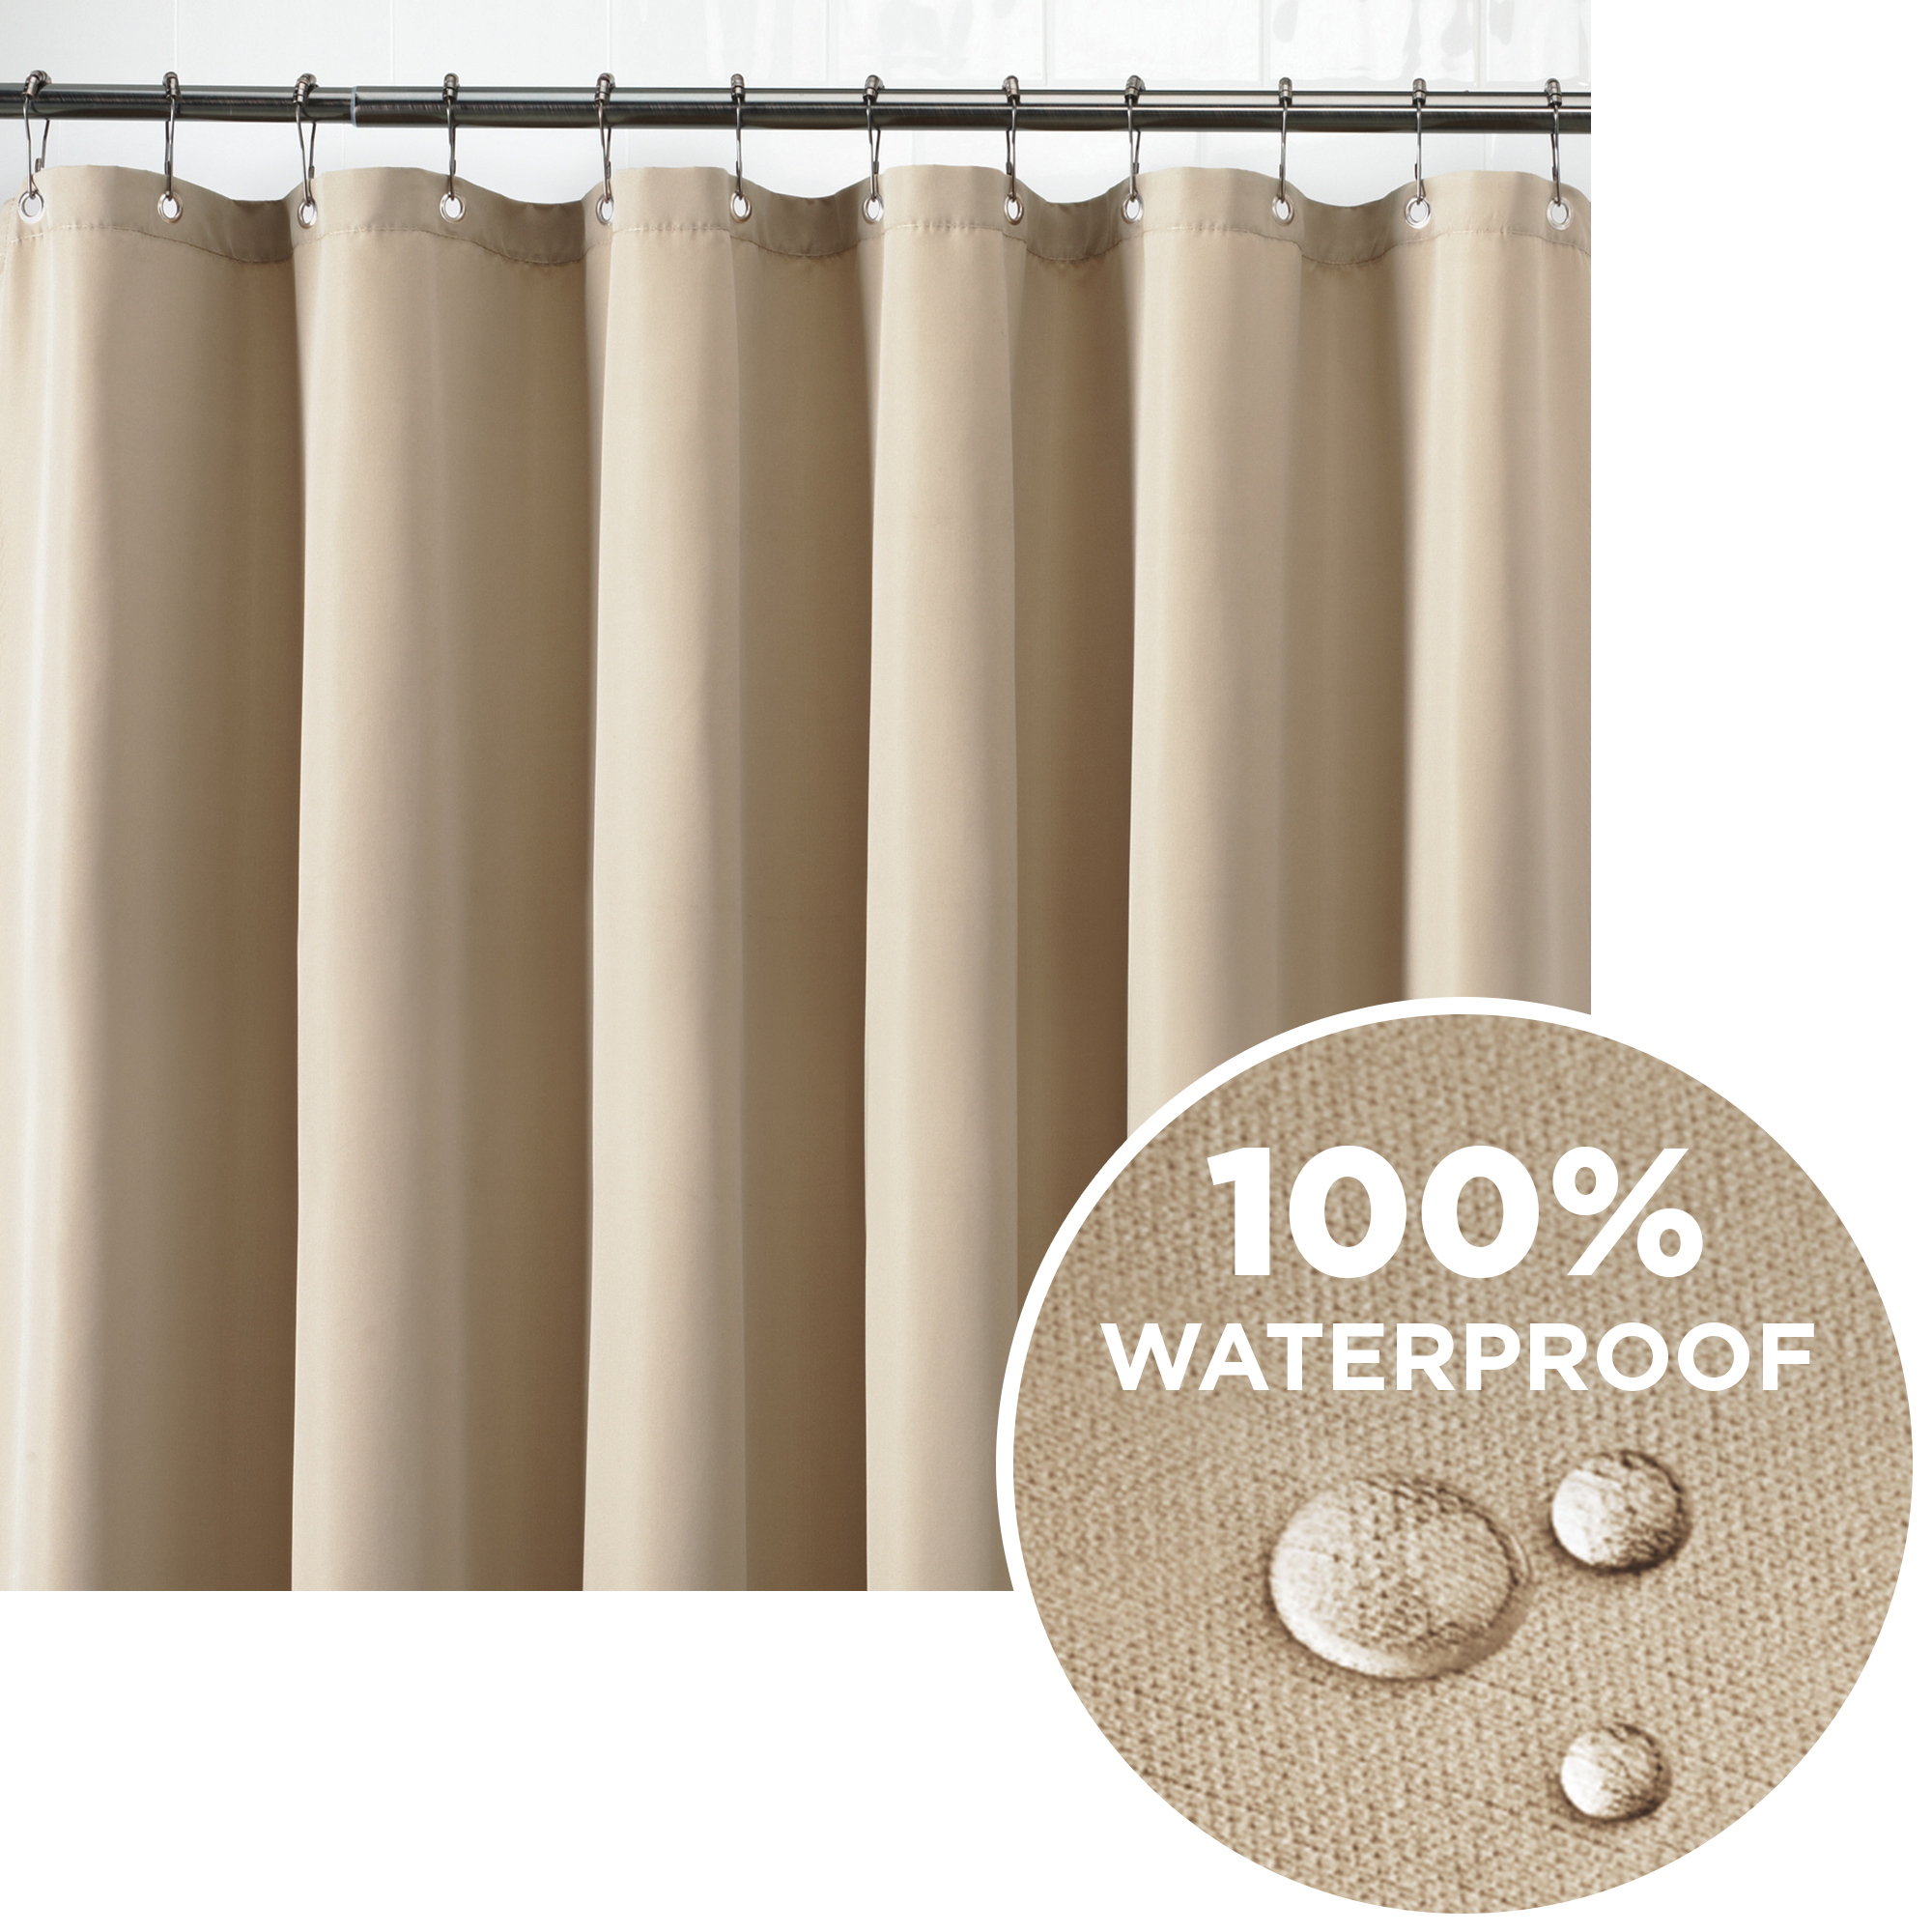 Better Homes & Gardens Ultimate Shield 100% Waterproof Machine Washable Fabric Shower Curtain Liner, Tan